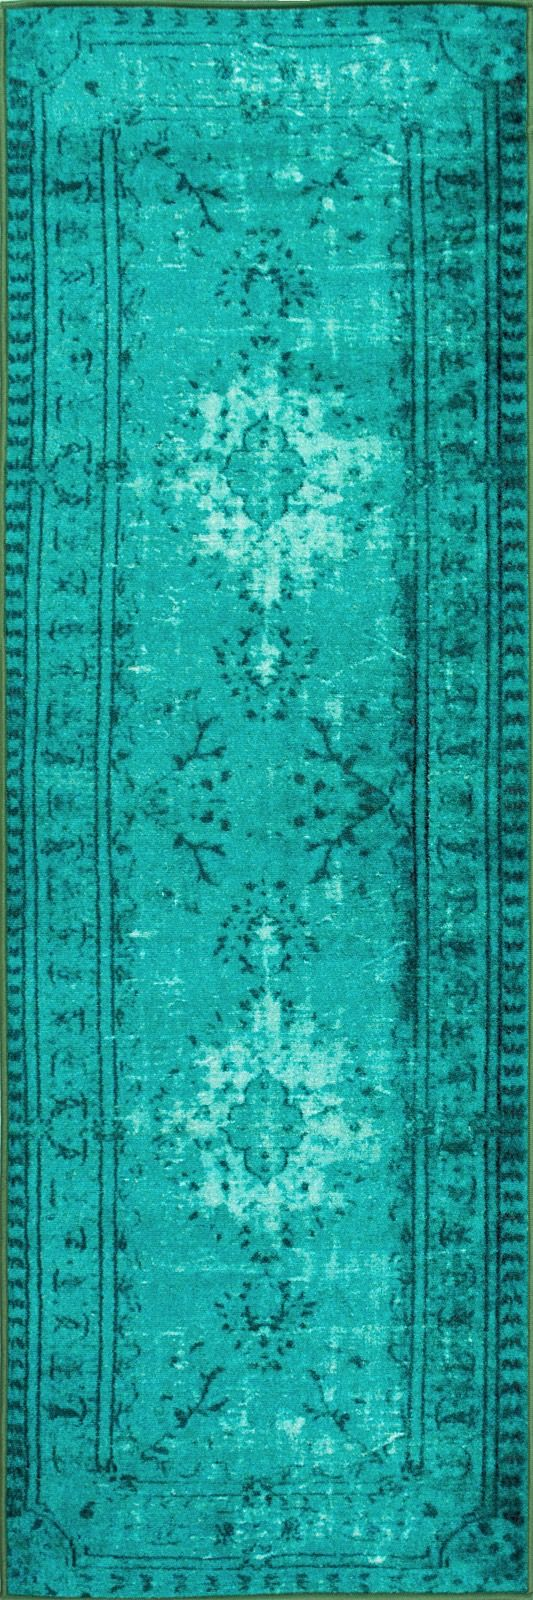 nuloom chroma overdyed transitional area rug collection